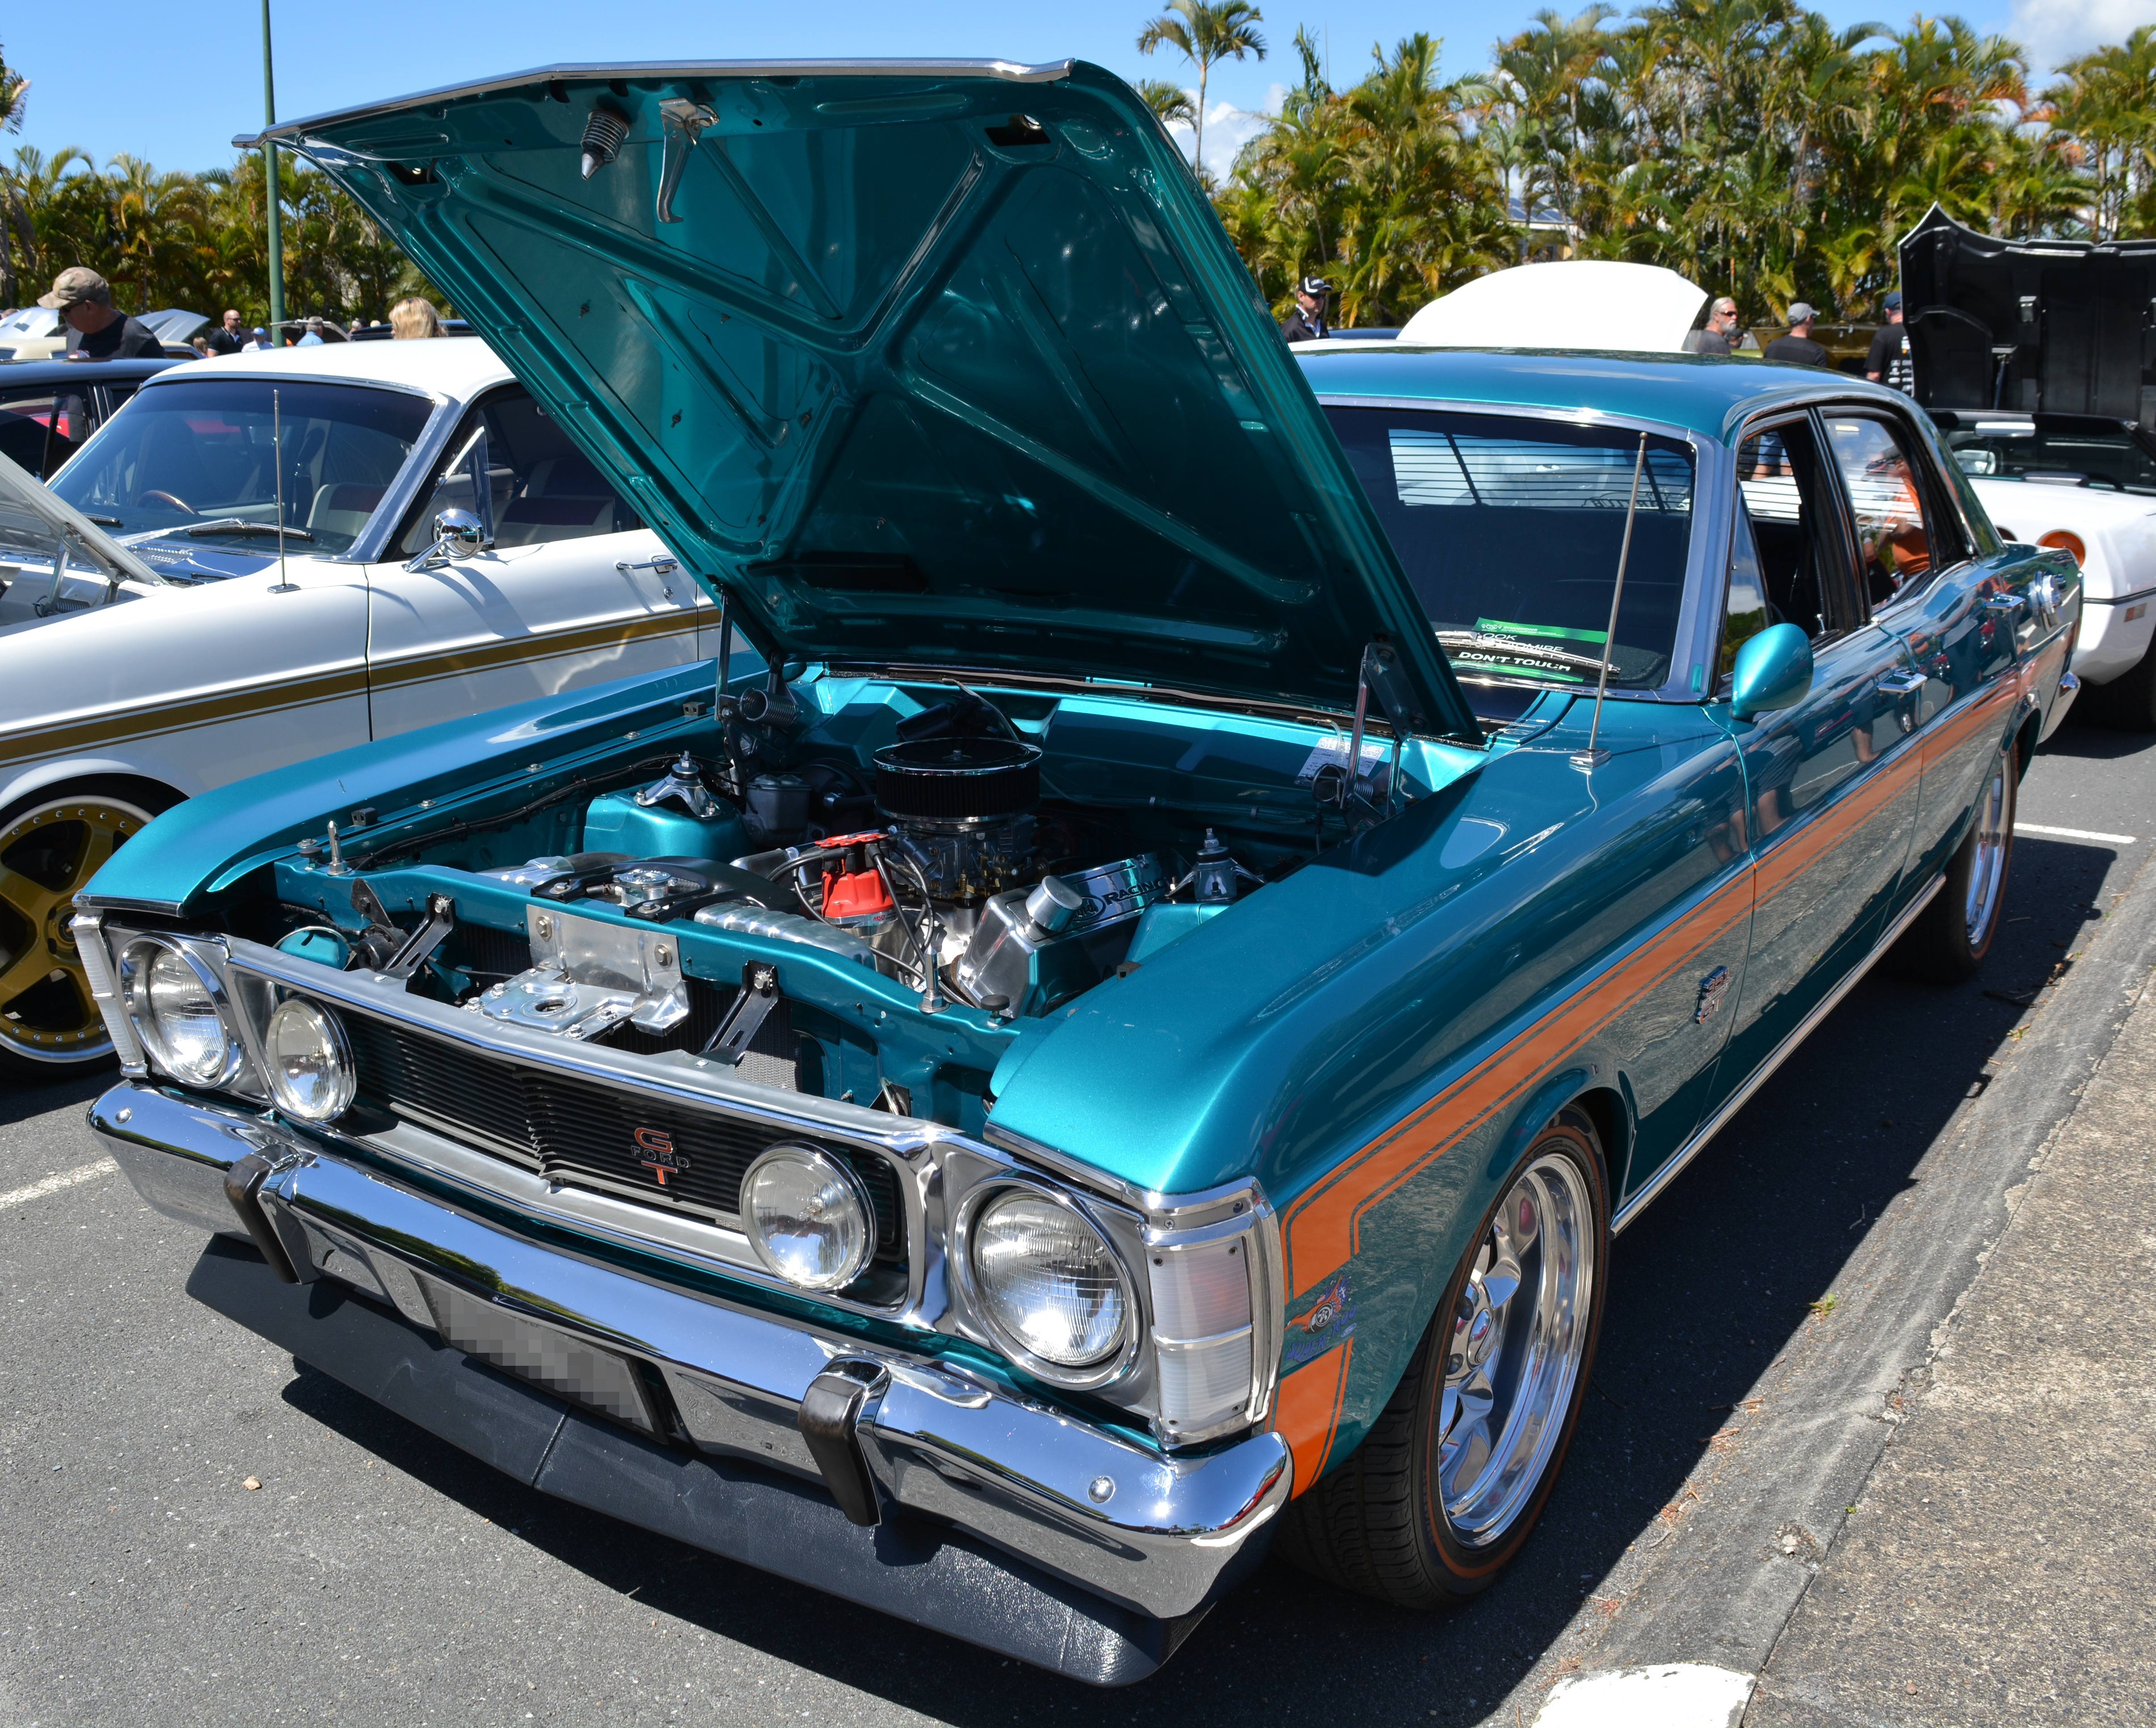 Gus's 1976 XW Ford Falcon